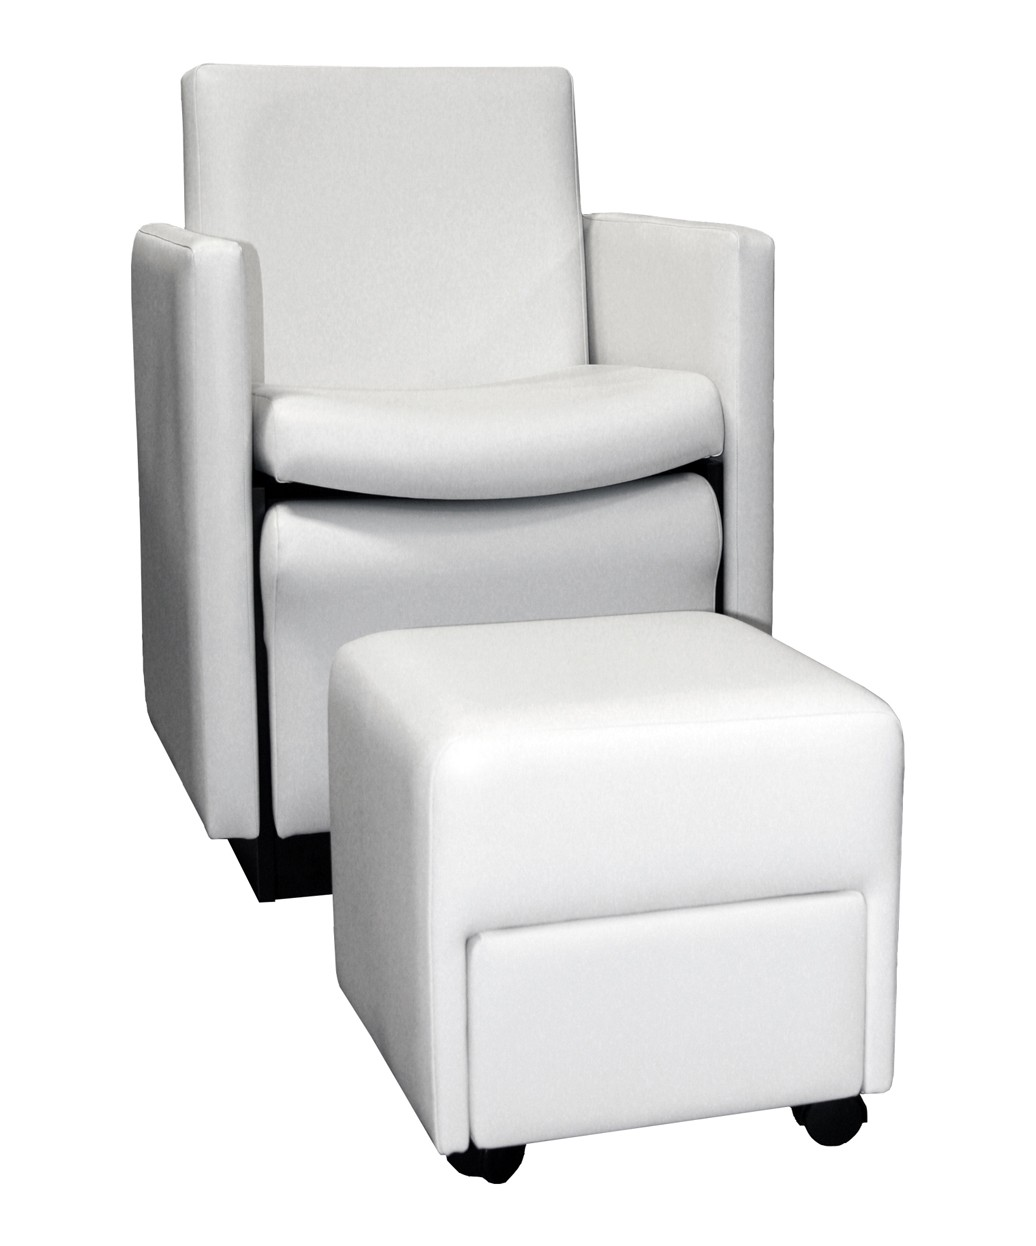 Collins 2550 Cigno Club Pedicure Chair W Footsie Bath